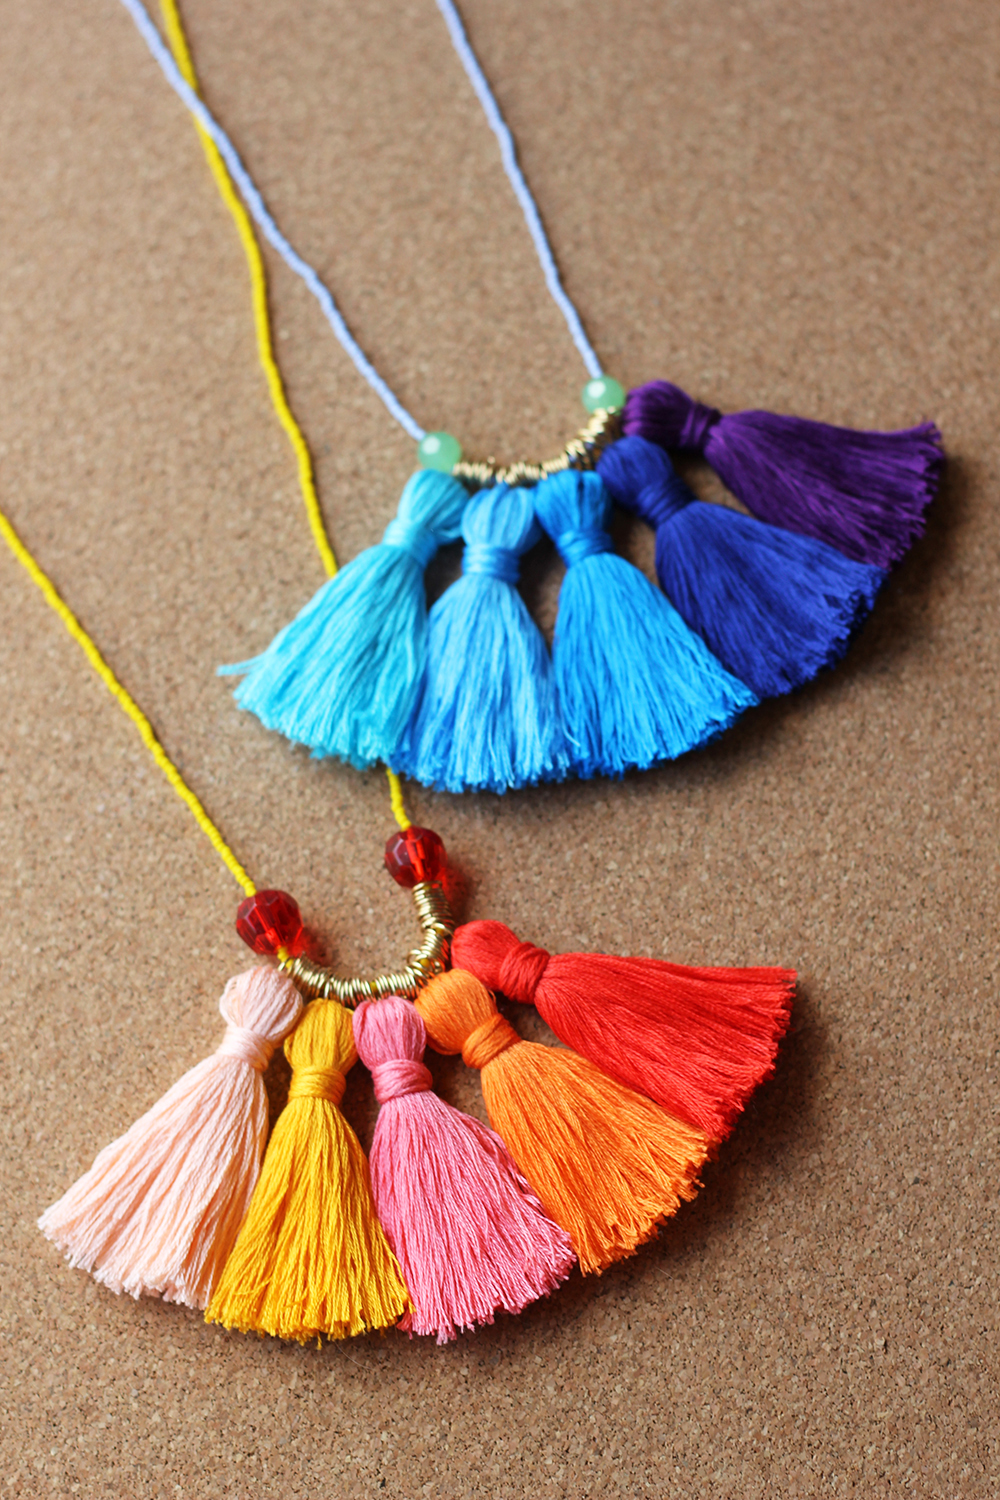 DIY Ombr\u00e9 Tassel Necklace  HomemadeBanana